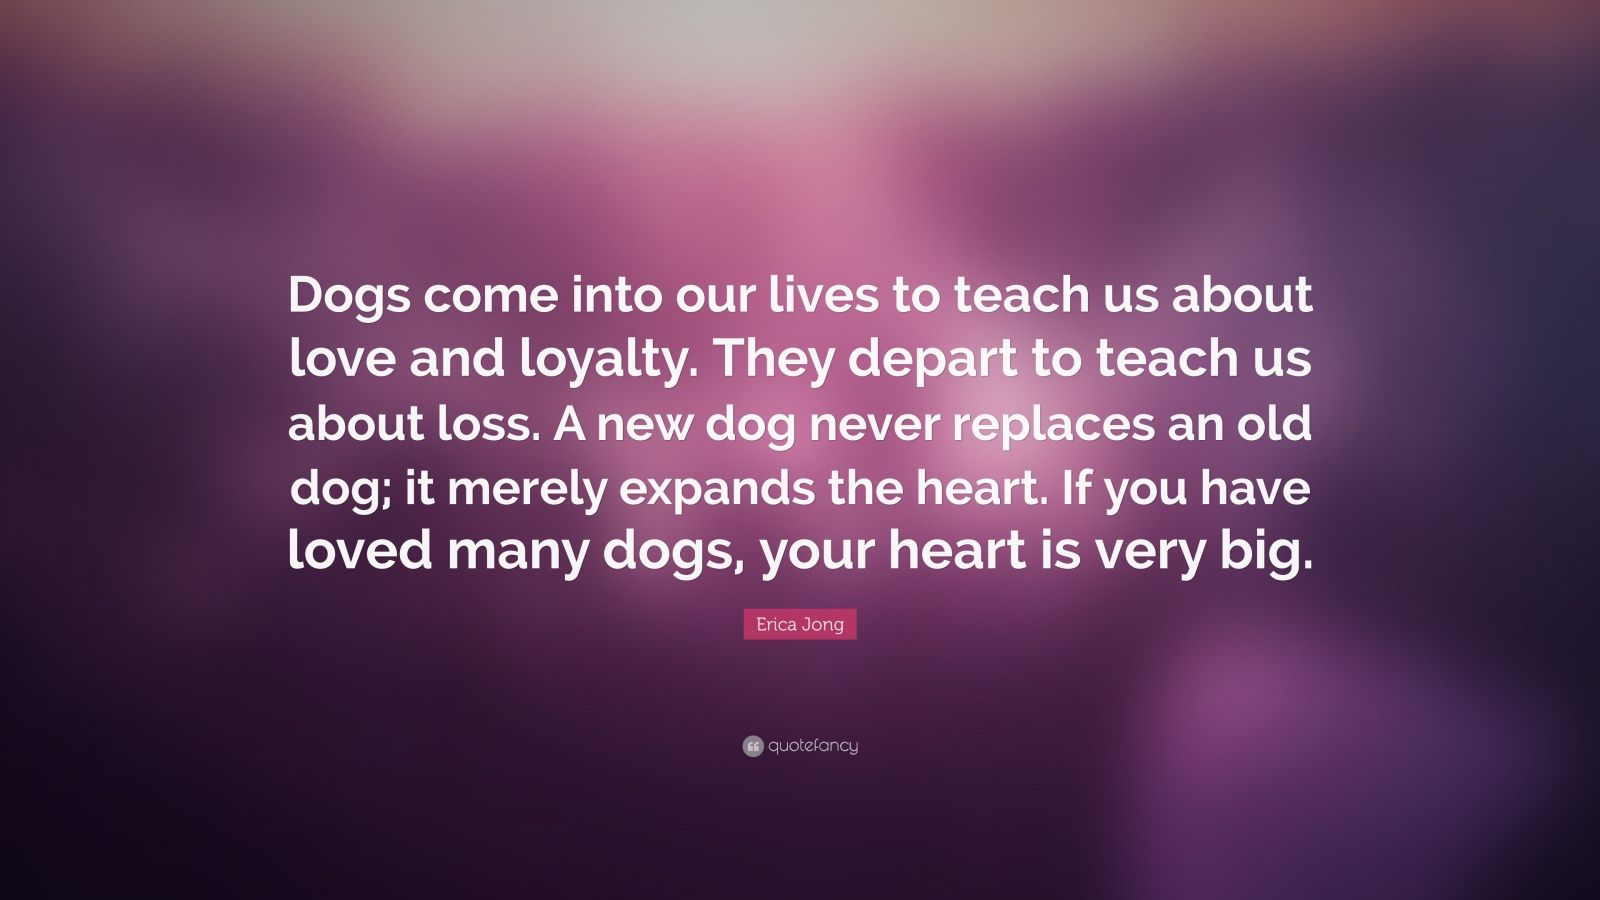 Dog Quote Wallpaper Erica Jong Quote Dogs Come Into Our Lives To Teach Us